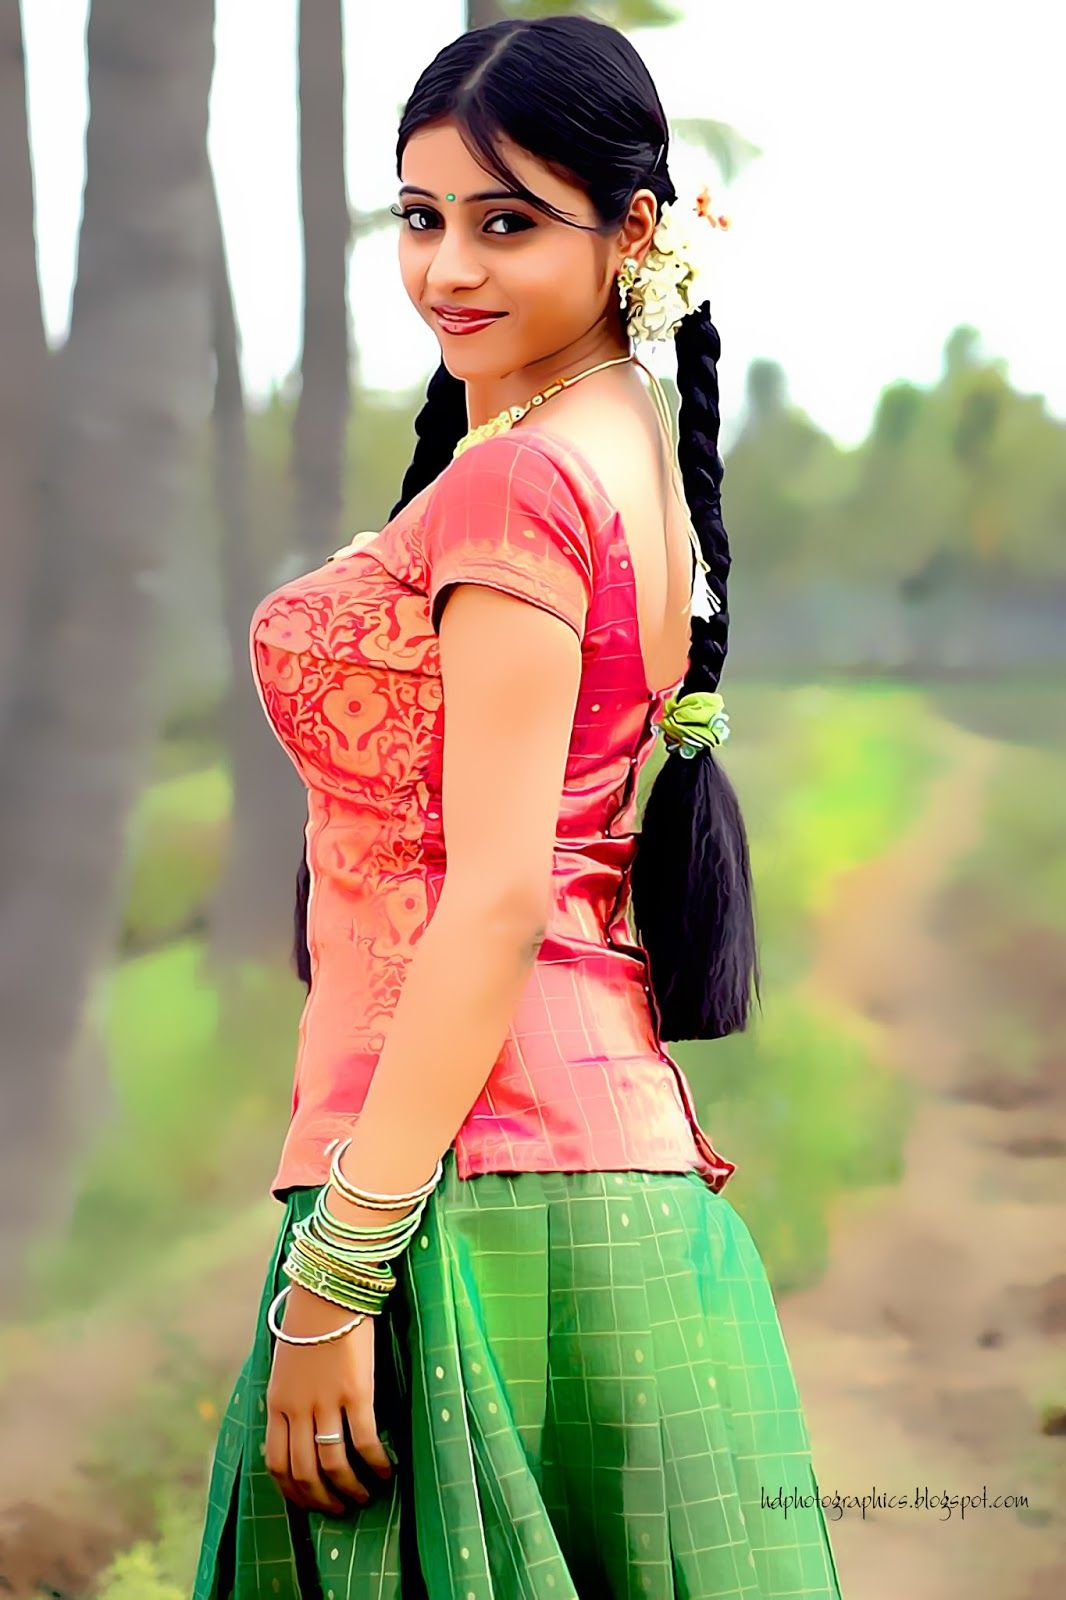 Cute South Indian Teenage Village Girl In Green Skirt Amd -2595